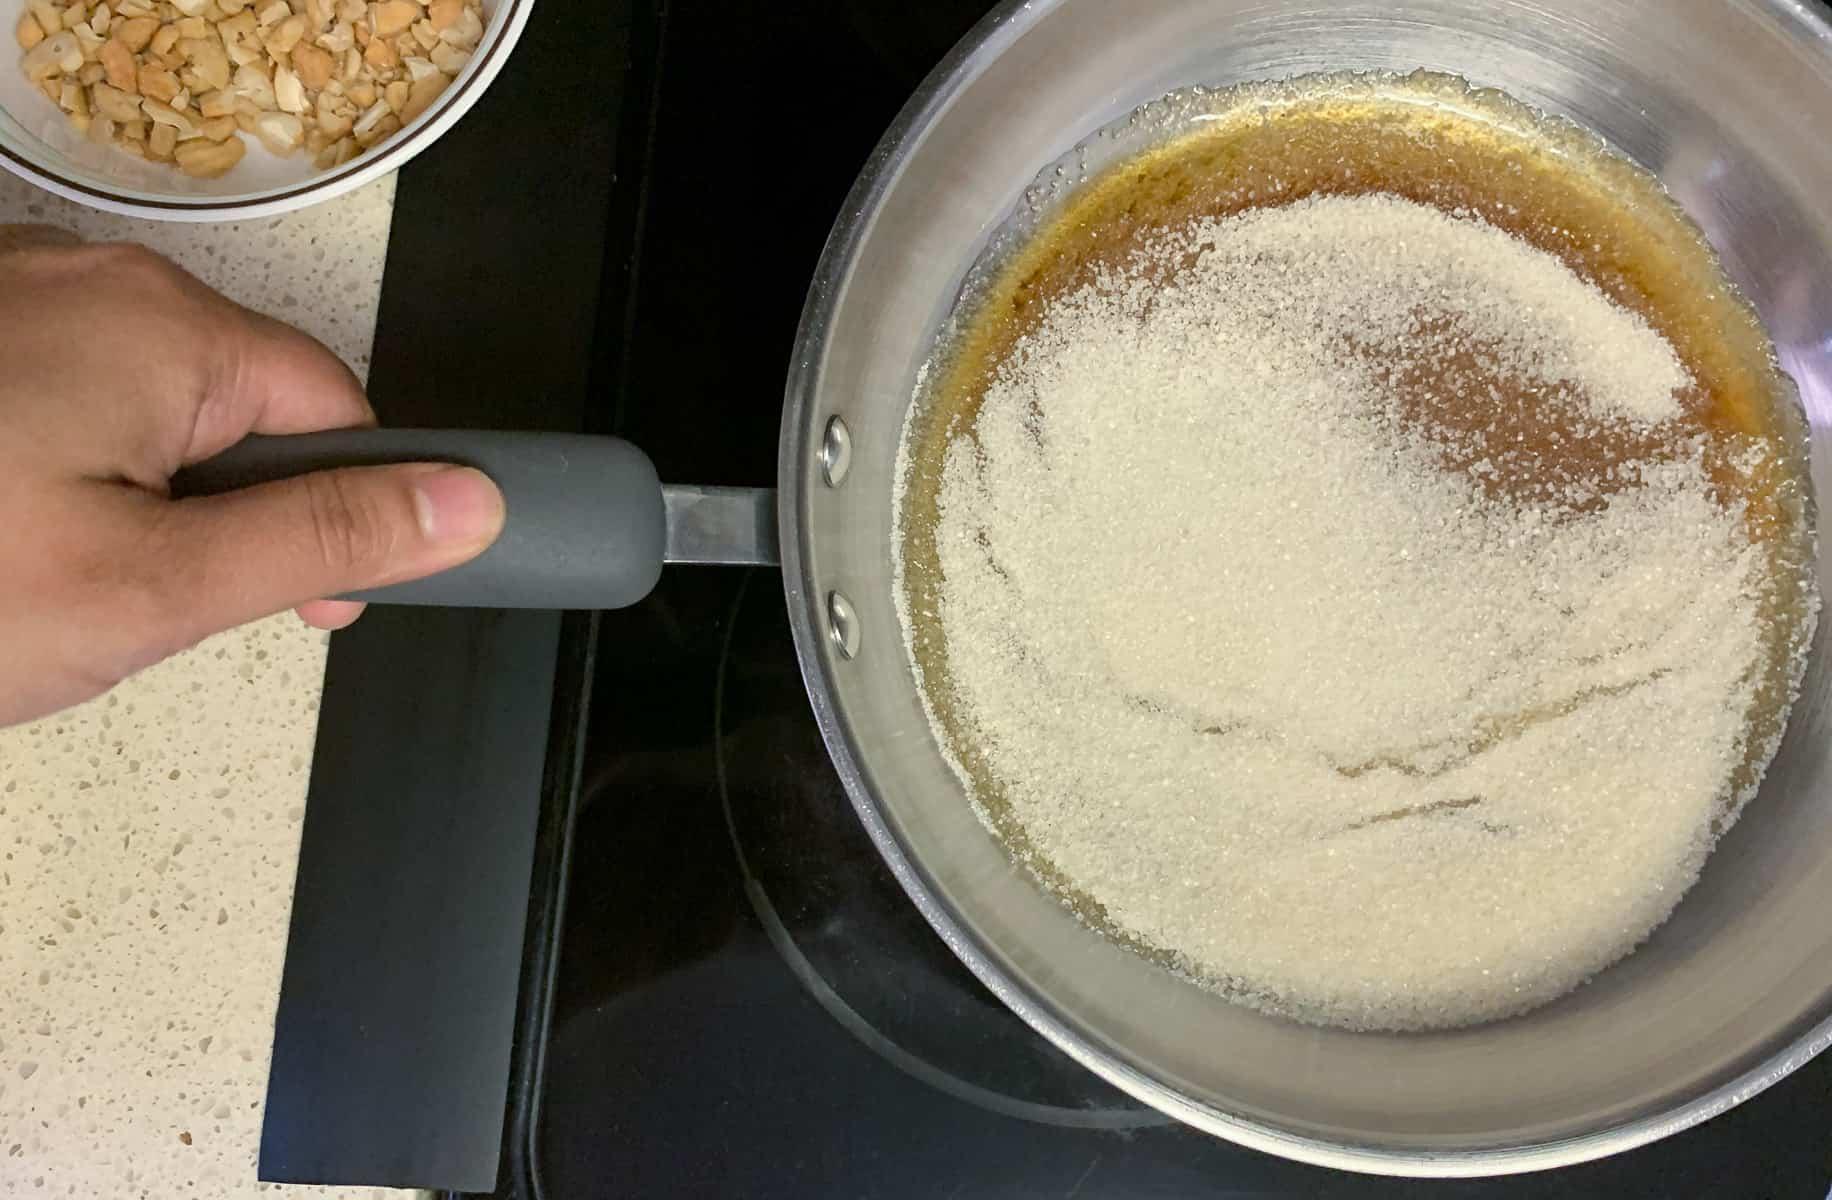 Swirling the pan with sugar